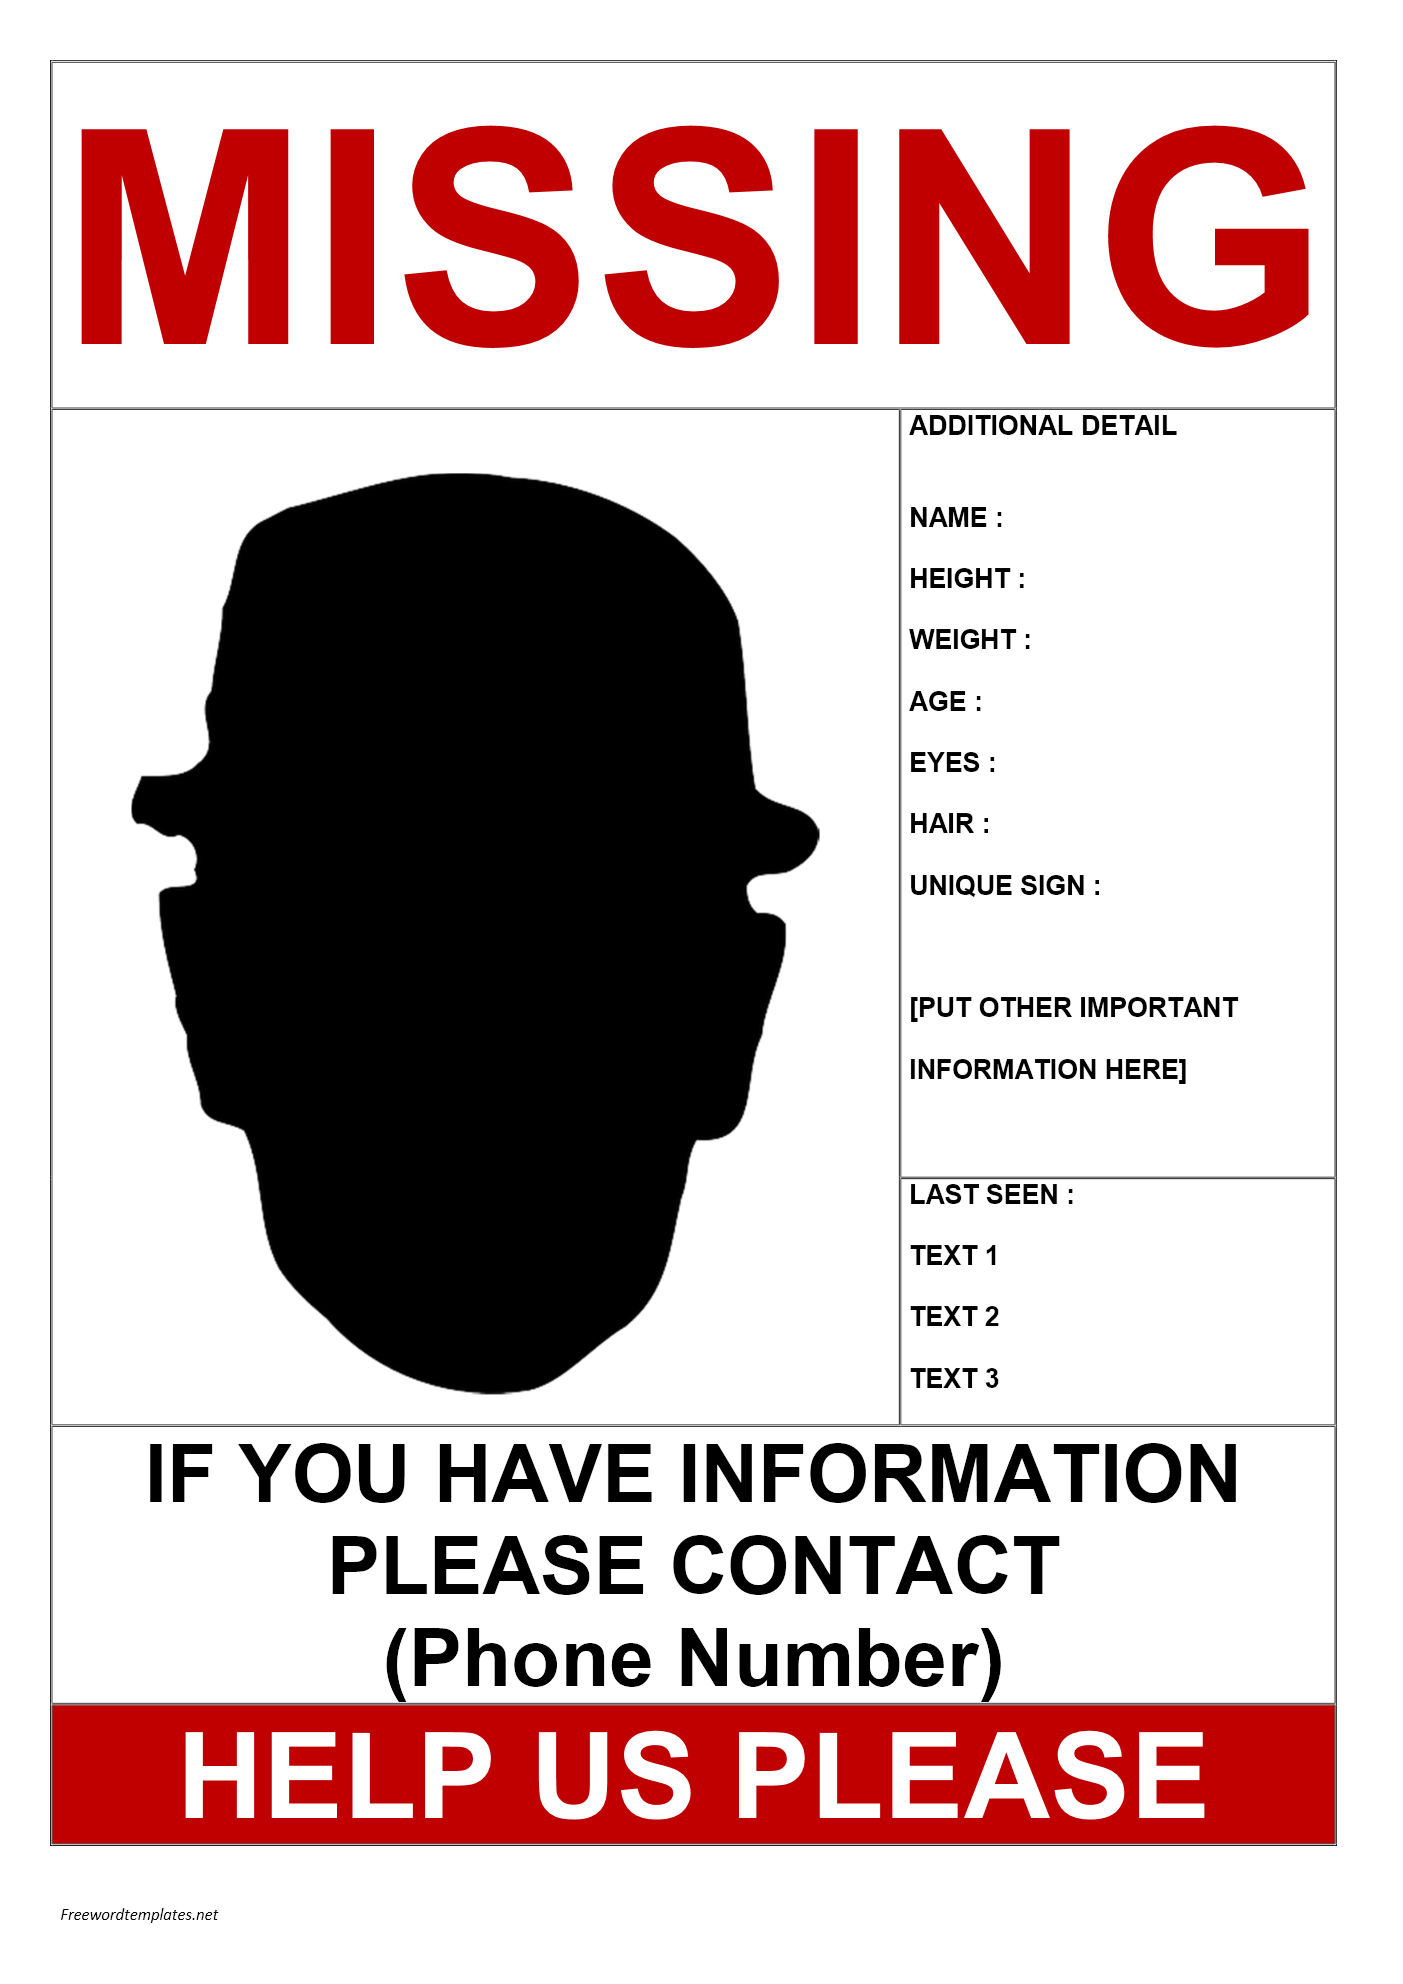 Missing Person Flyer Template Free